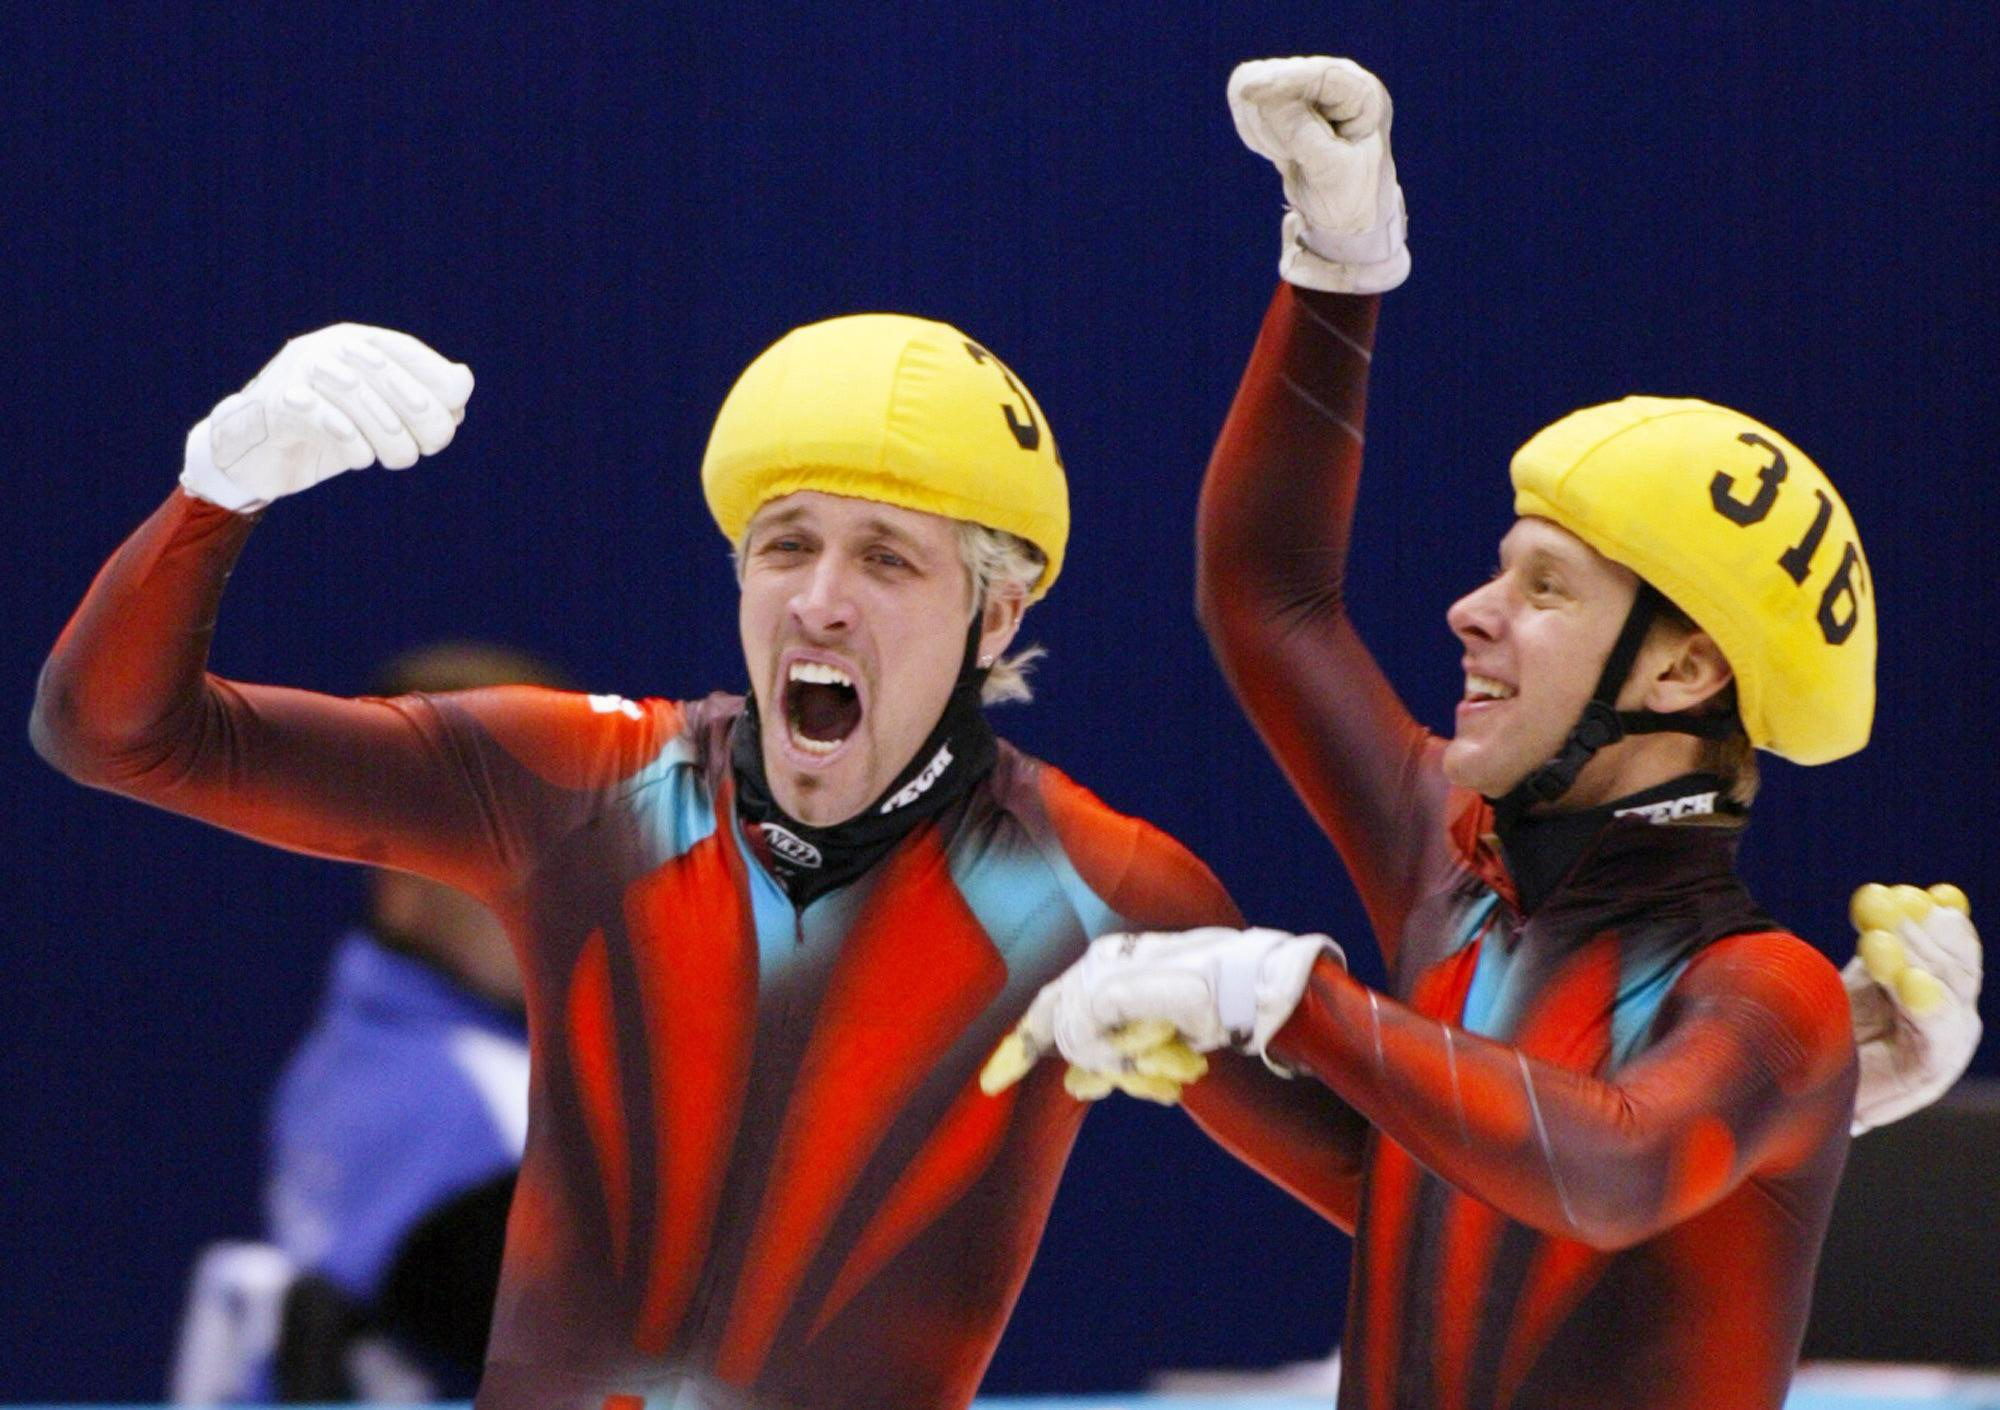 Two speed skaters celebrate with arms up